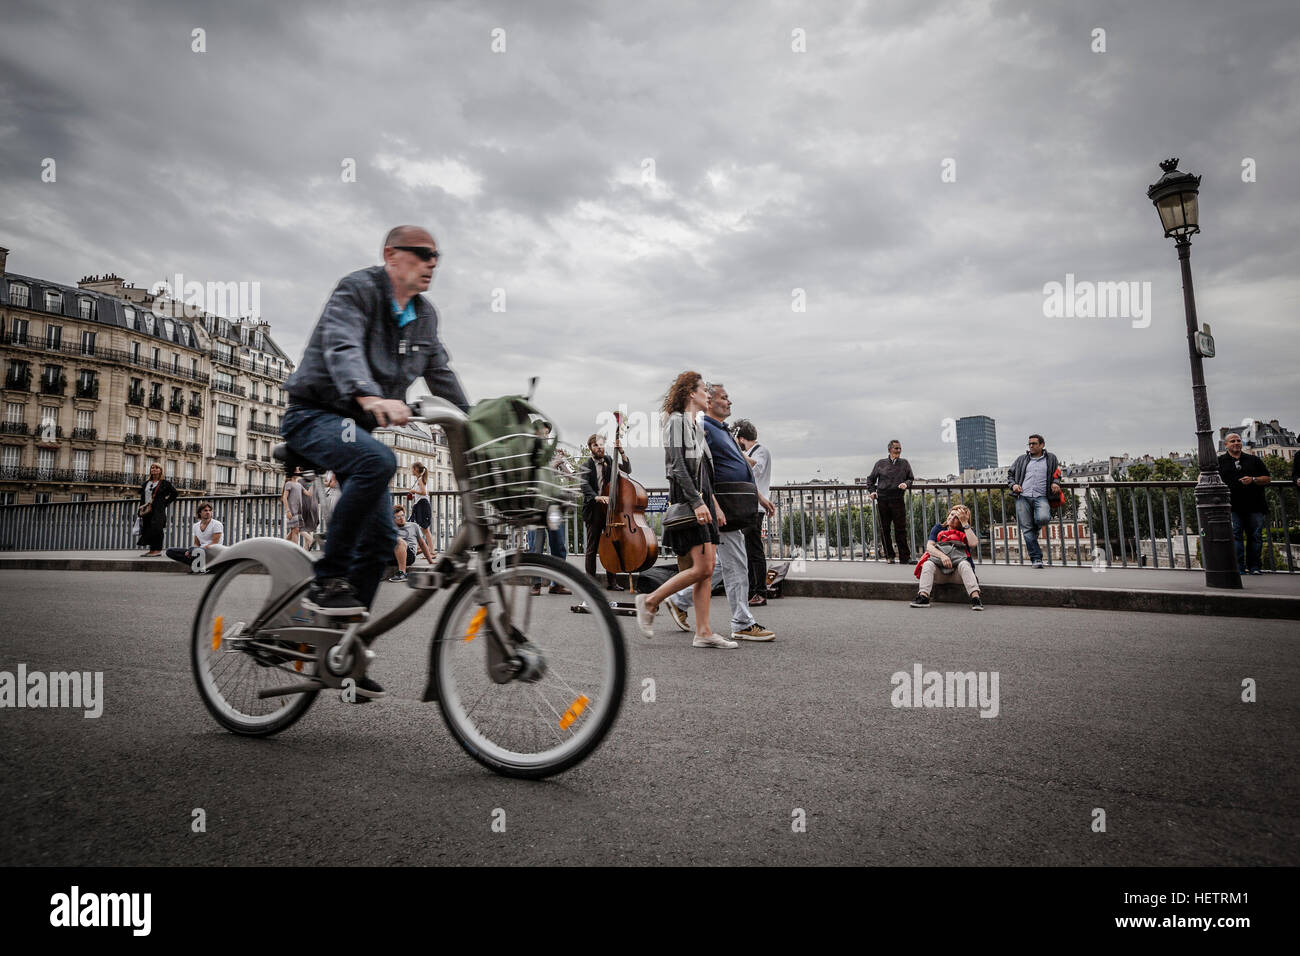 Man on a bike in the streets of Paris - Stock Image